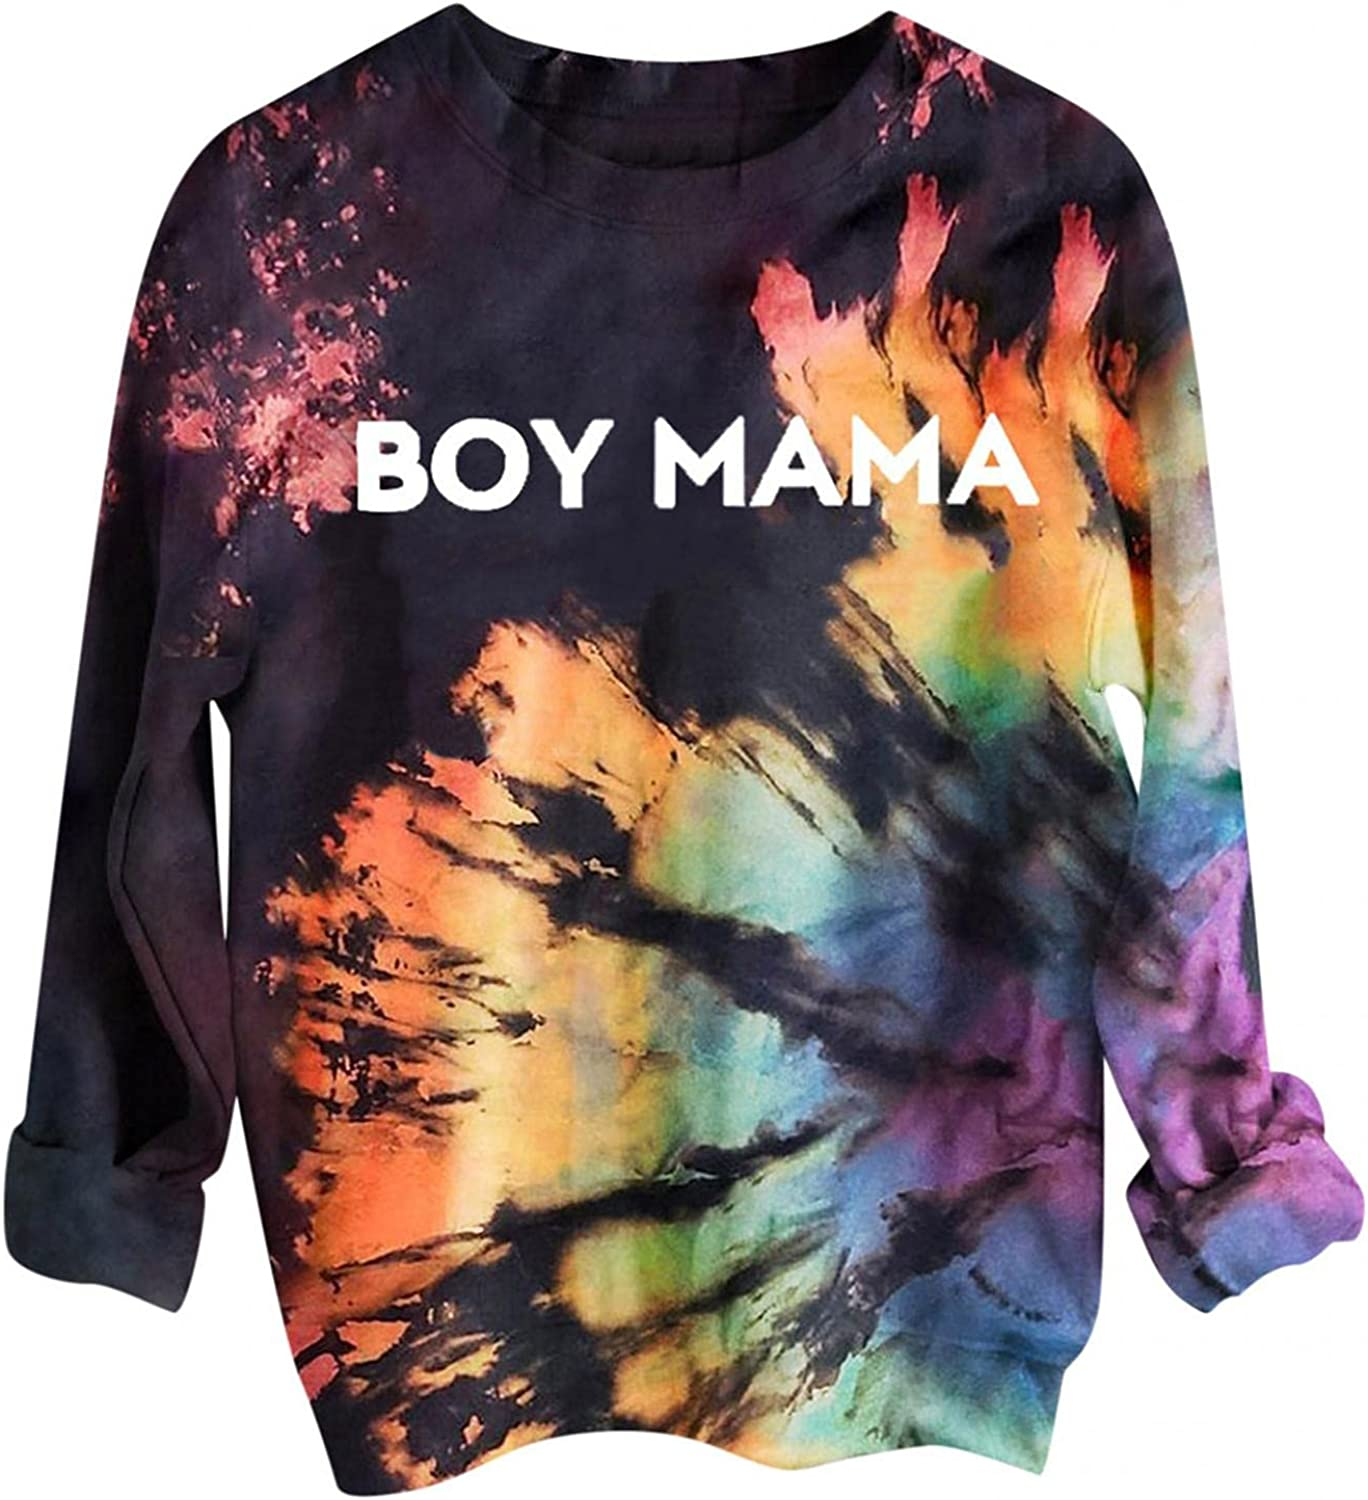 AODONG Halloween Sweaters for Women Comfy Loose Sweatshirts Tie Dye Rainbow O-Neck Long Sleeves Pullover Tops